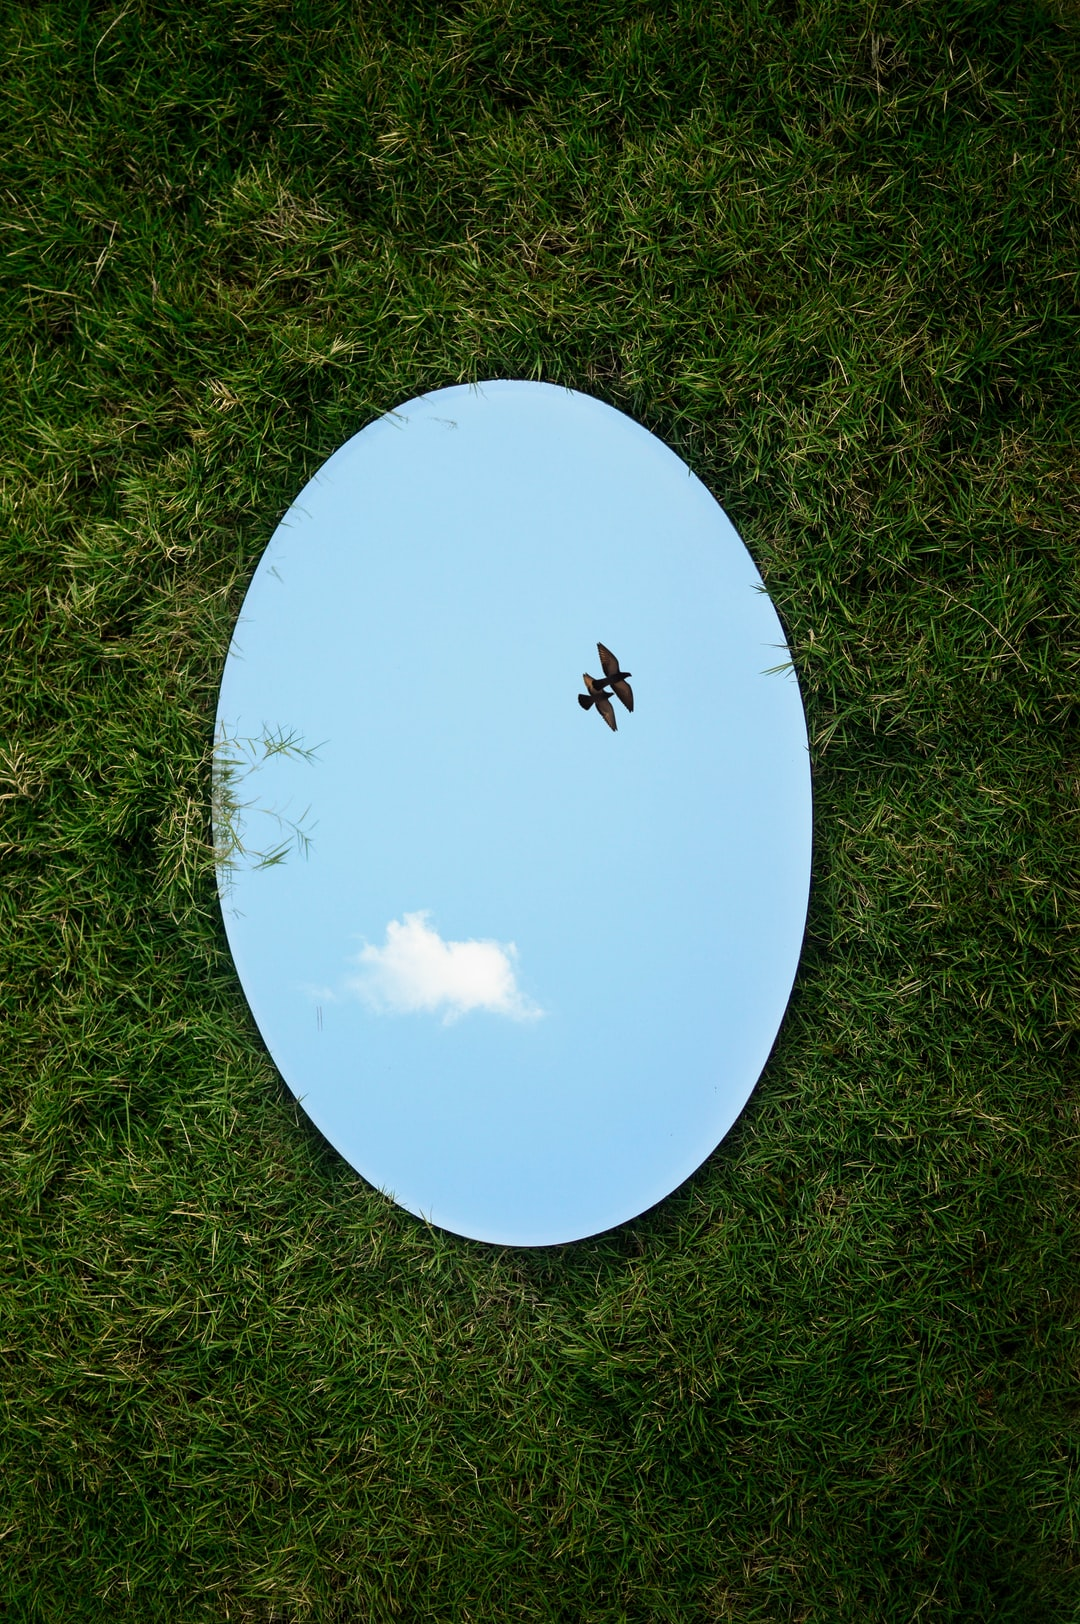 this photo was taken for a photography competition (amateur) with a theme 'Reflection'.